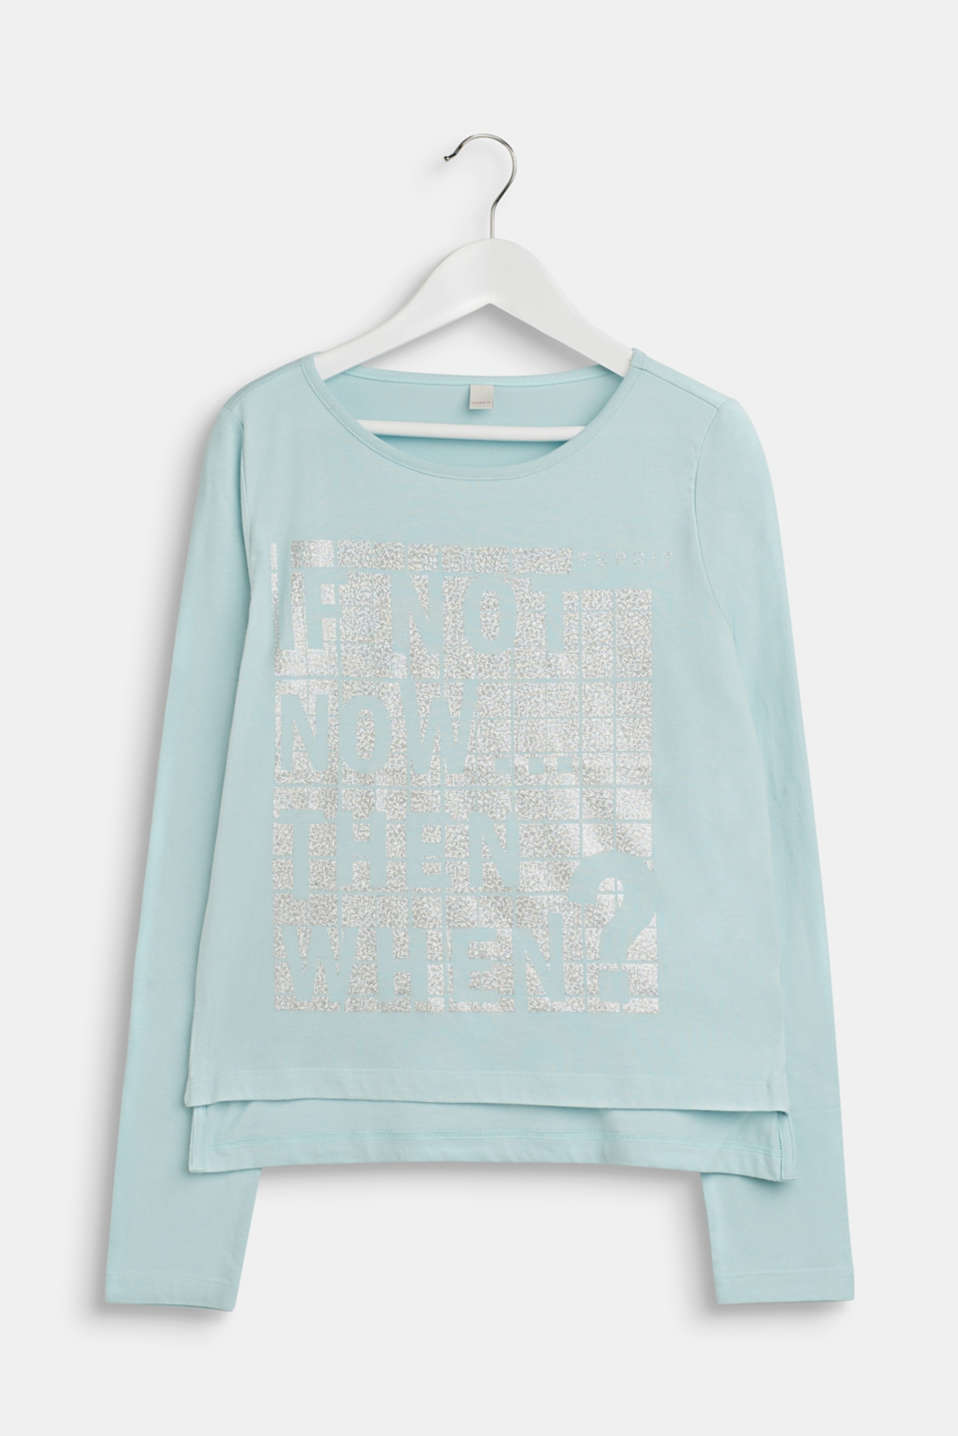 Esprit - Long sleeve top with a metallic print, 100% cotton